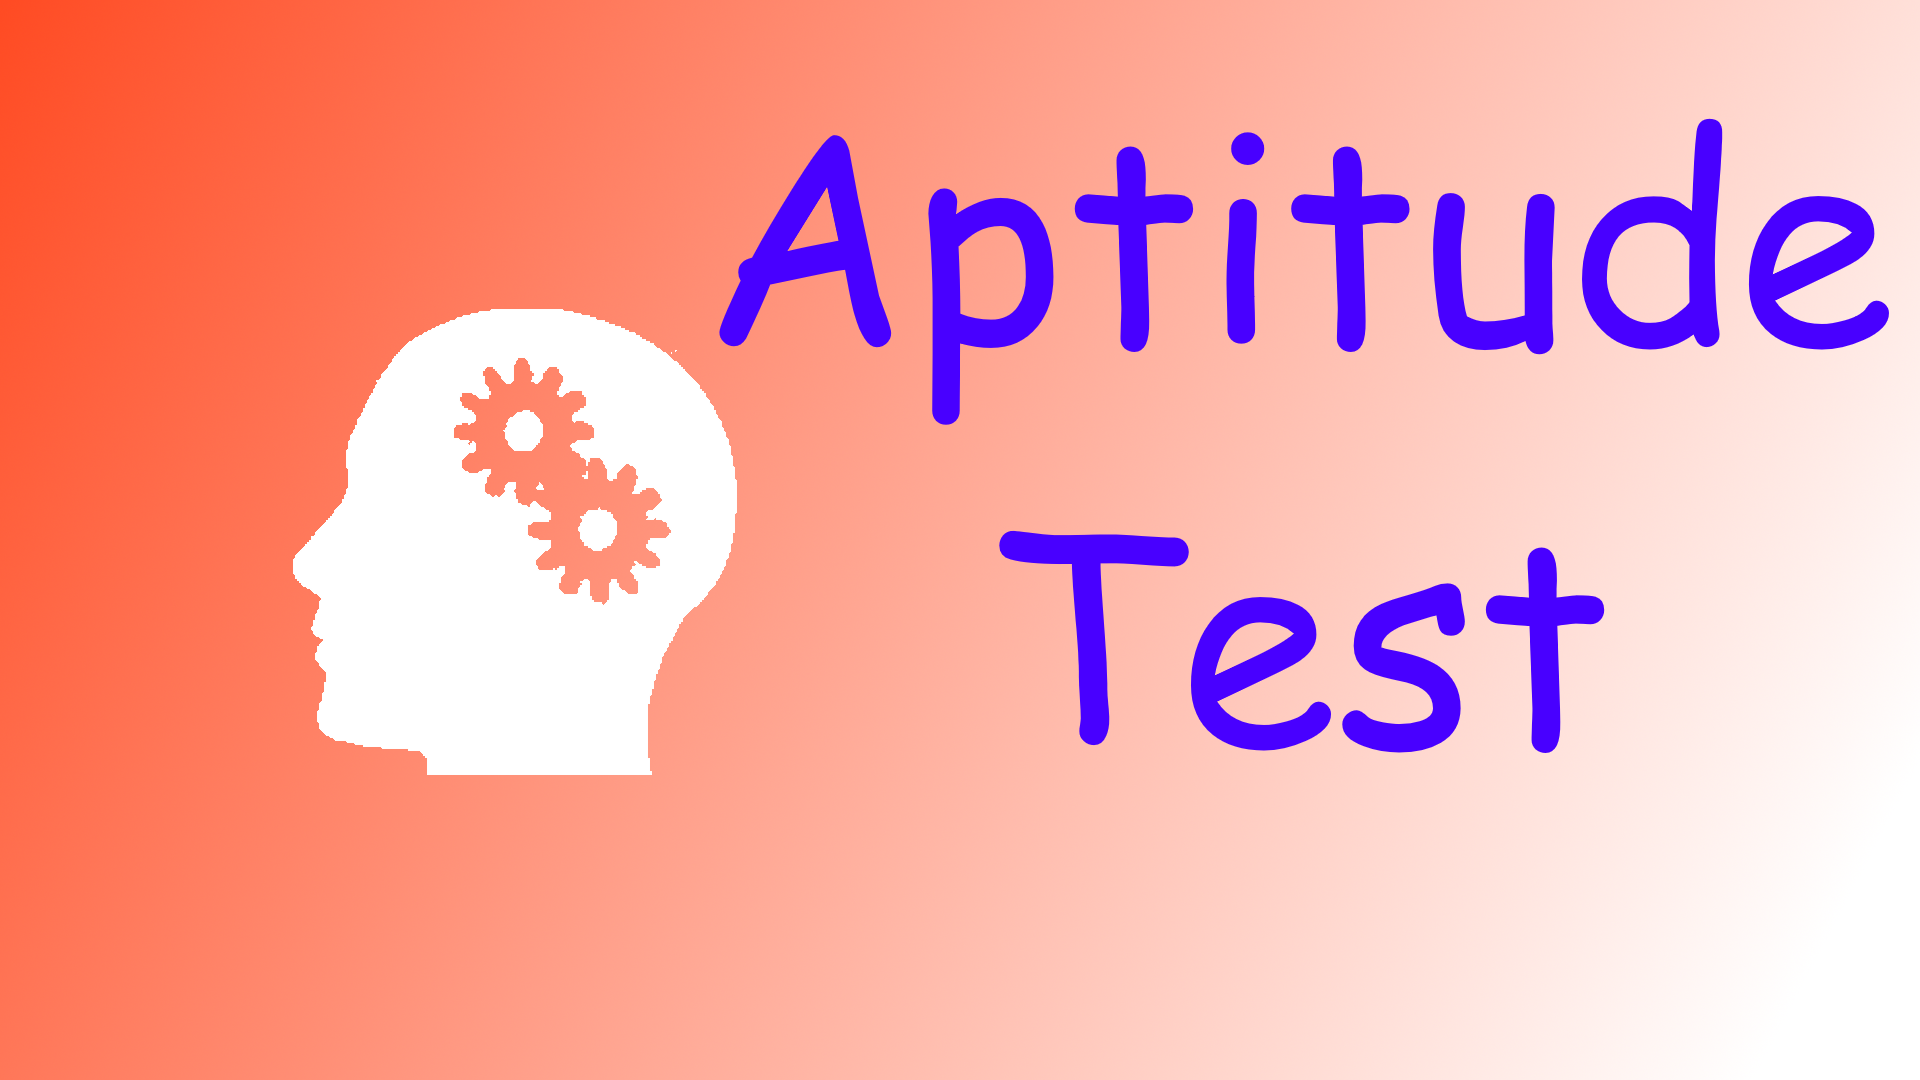 Get Aptitude Tests 1 - Microsoft Store